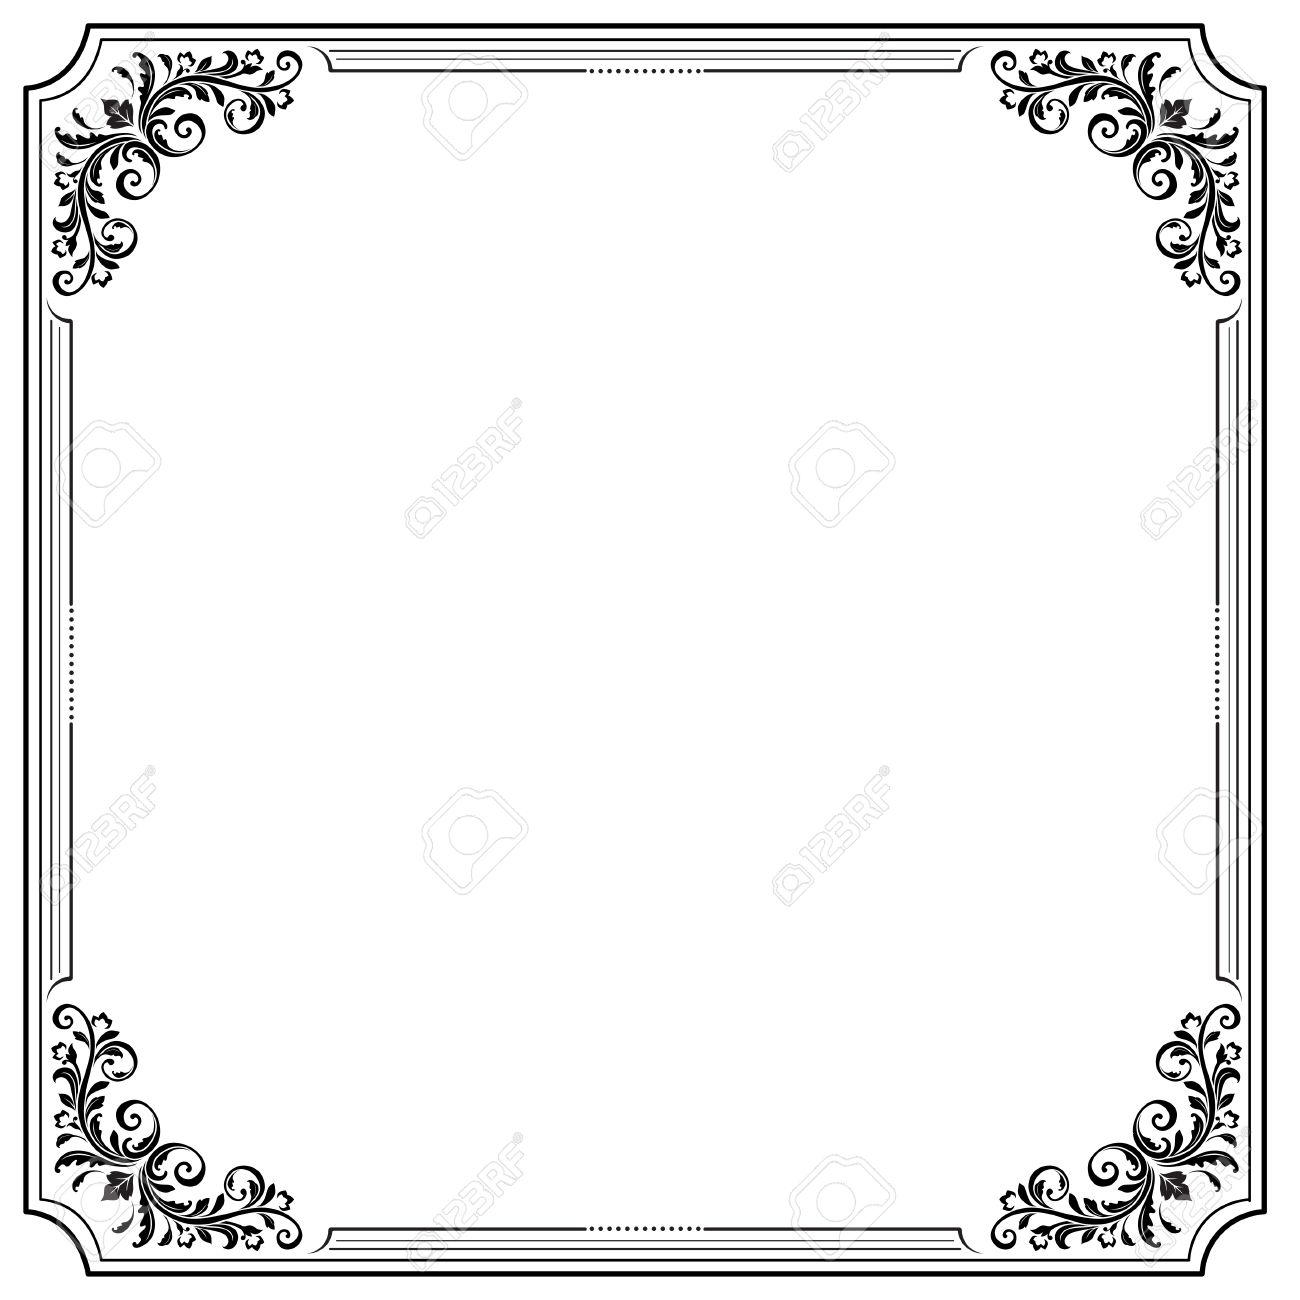 black square decorative frame with vignettes letter page format